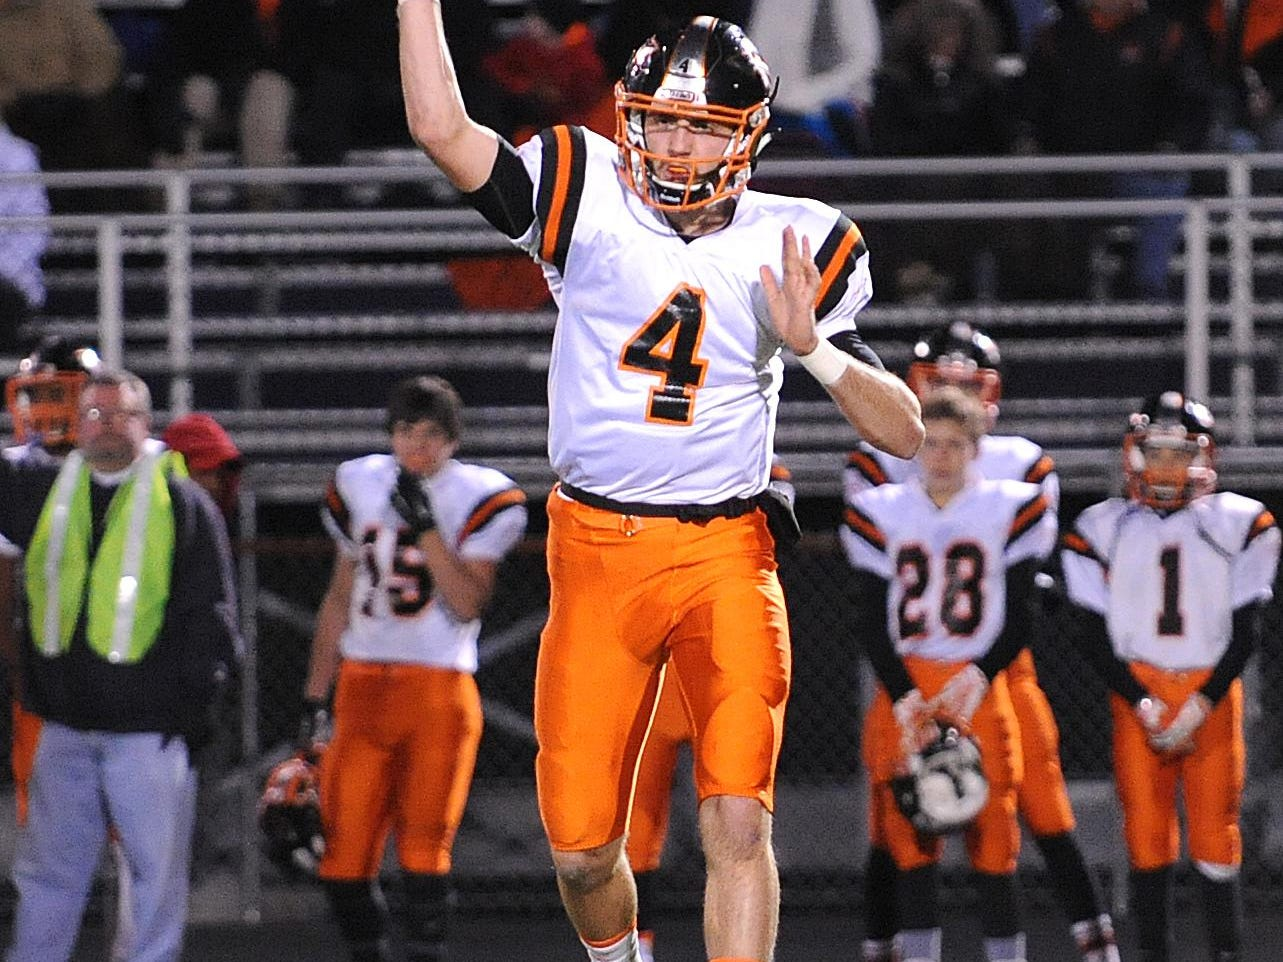 Ashland's Grant Denbow passes the ball Friday night during their game against Lexington.